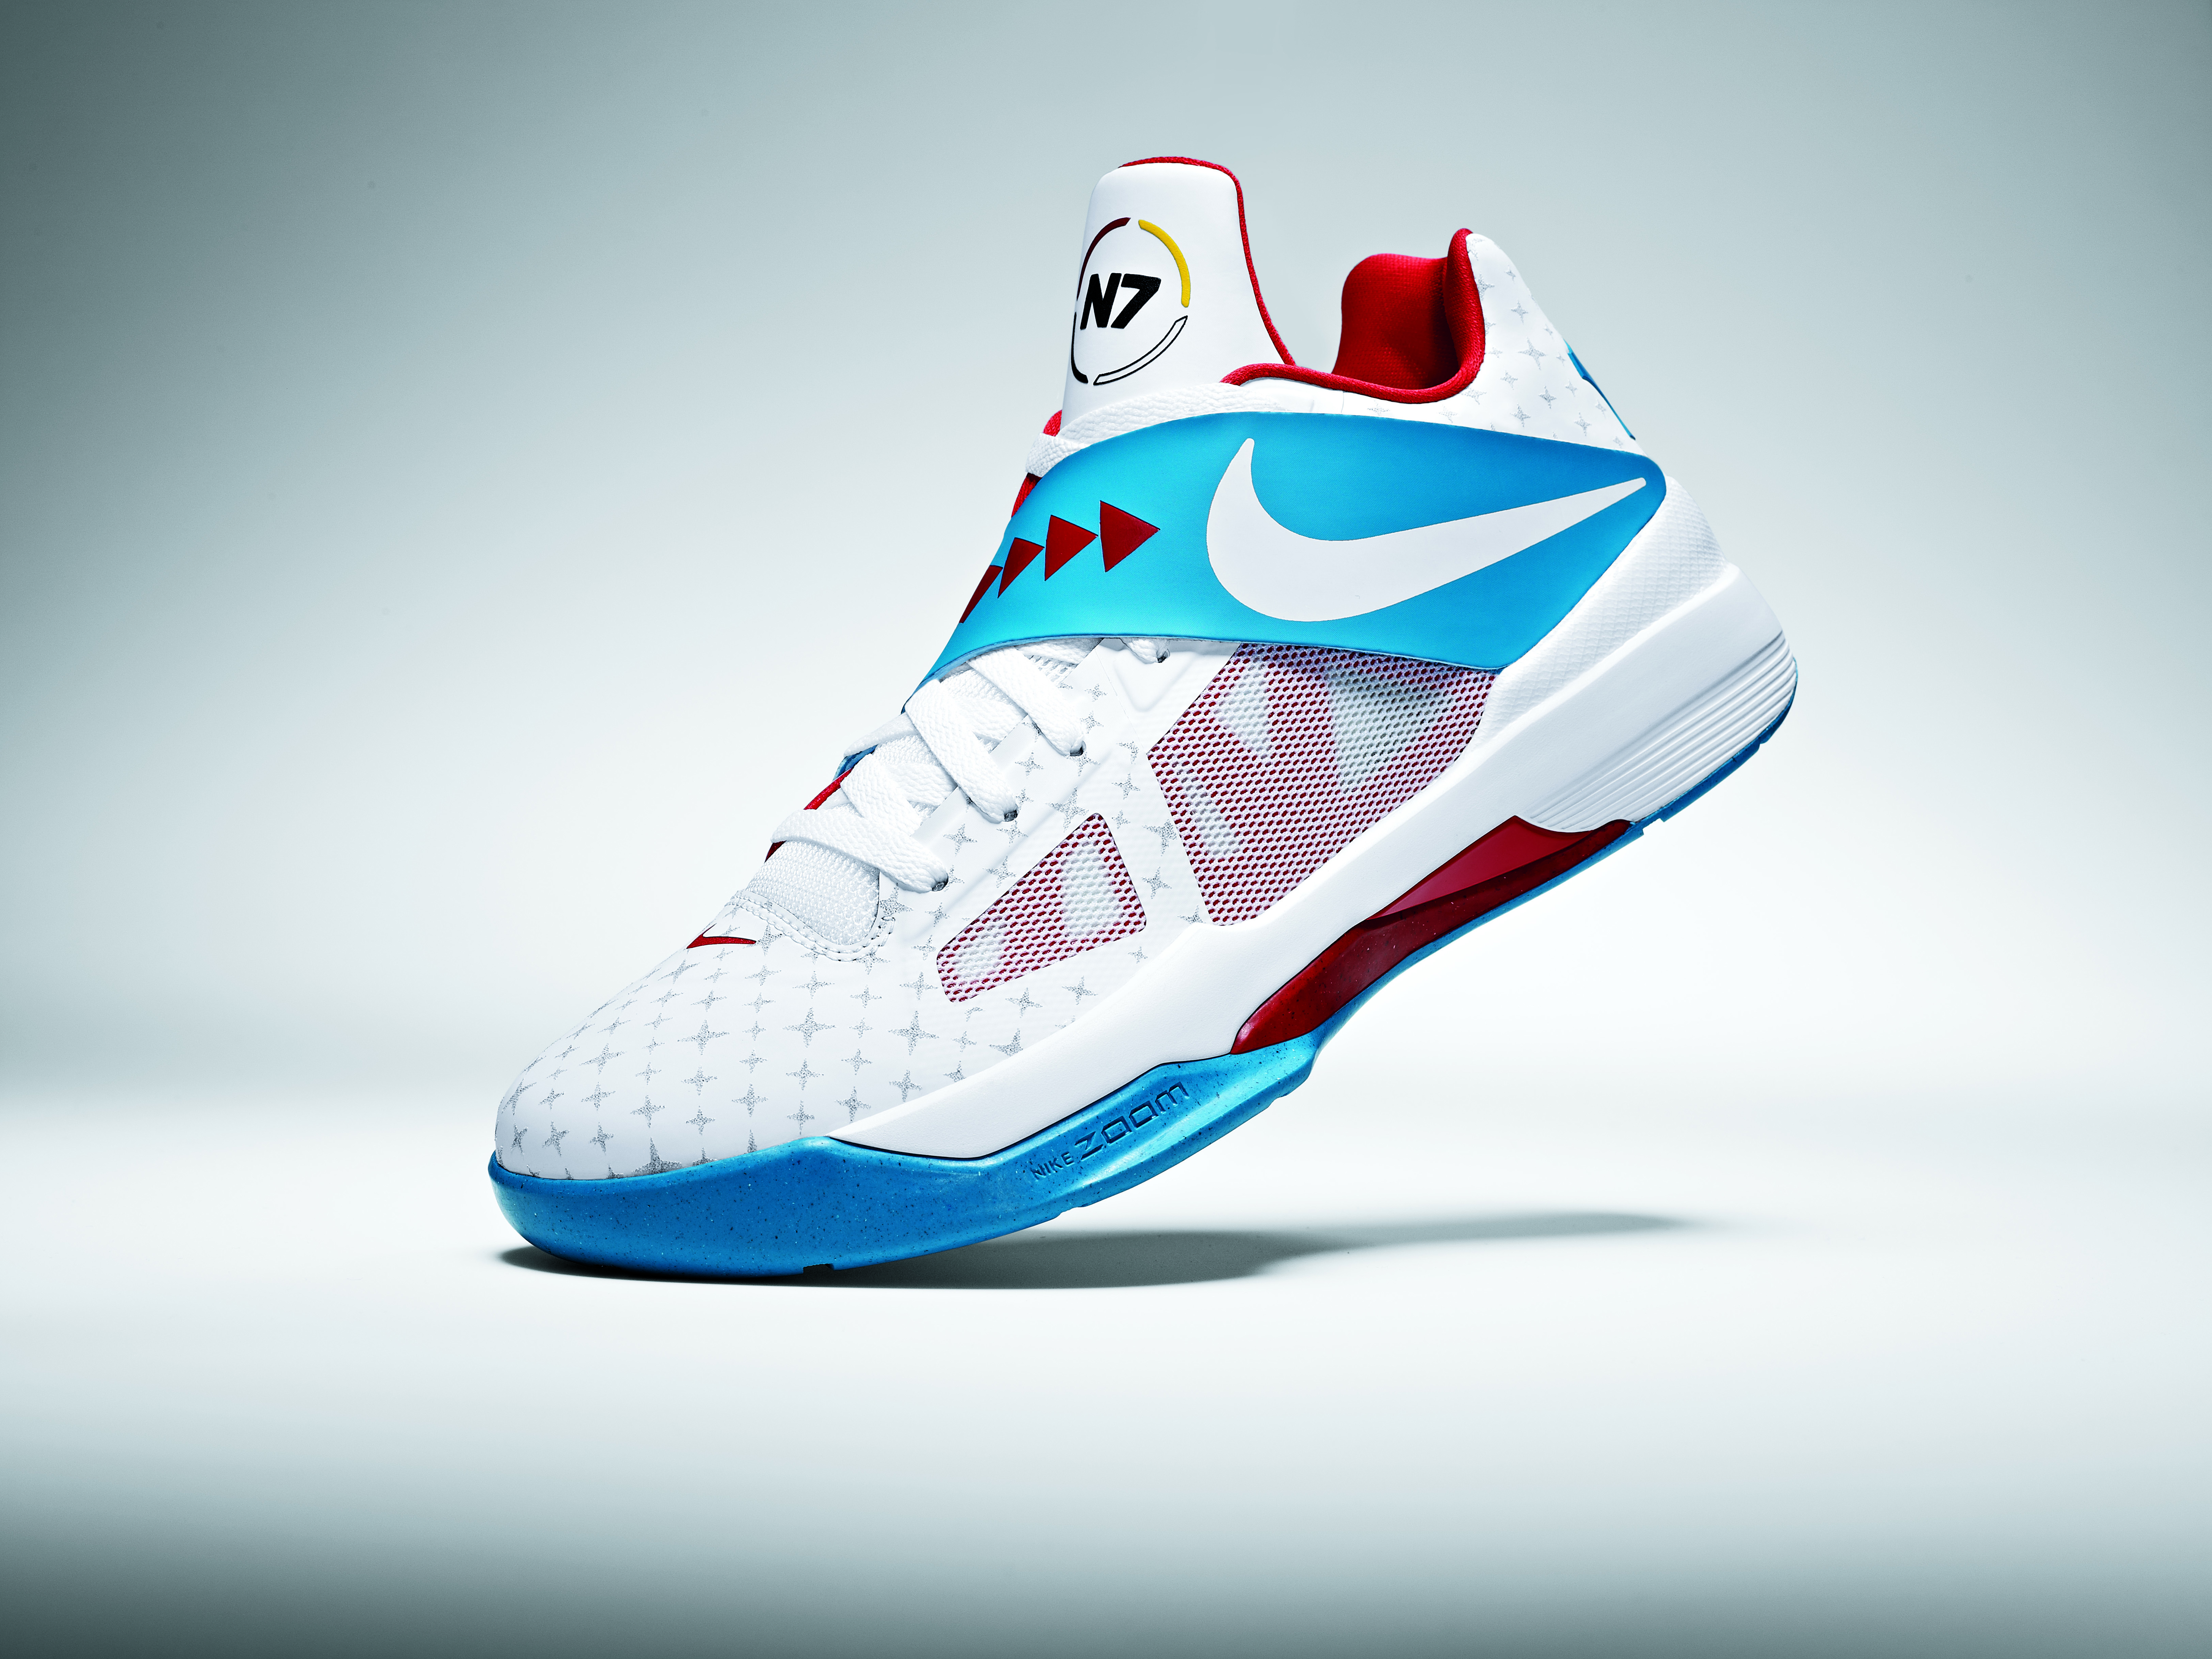 Nike News - Kevin Durant Unveils the New Nike N7 Zoom KDIV